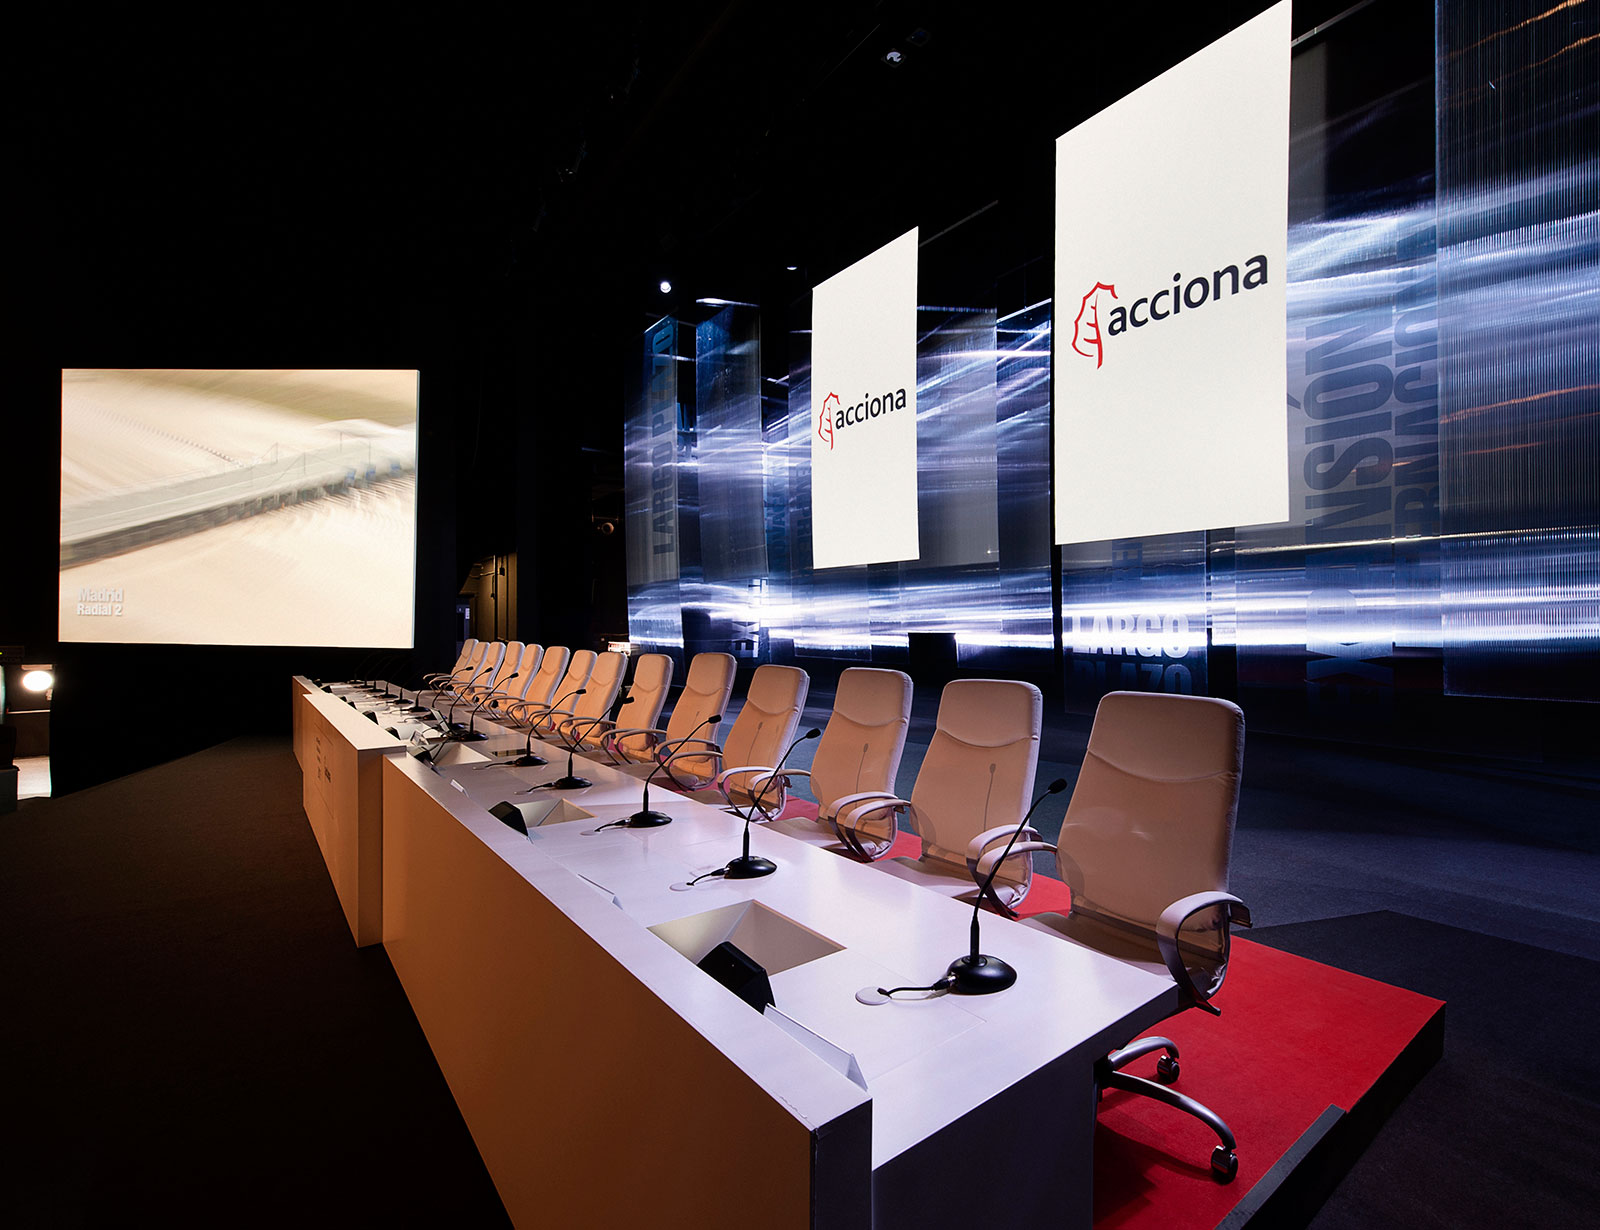 ACCIONA ANNUAL GENERAL MEETING